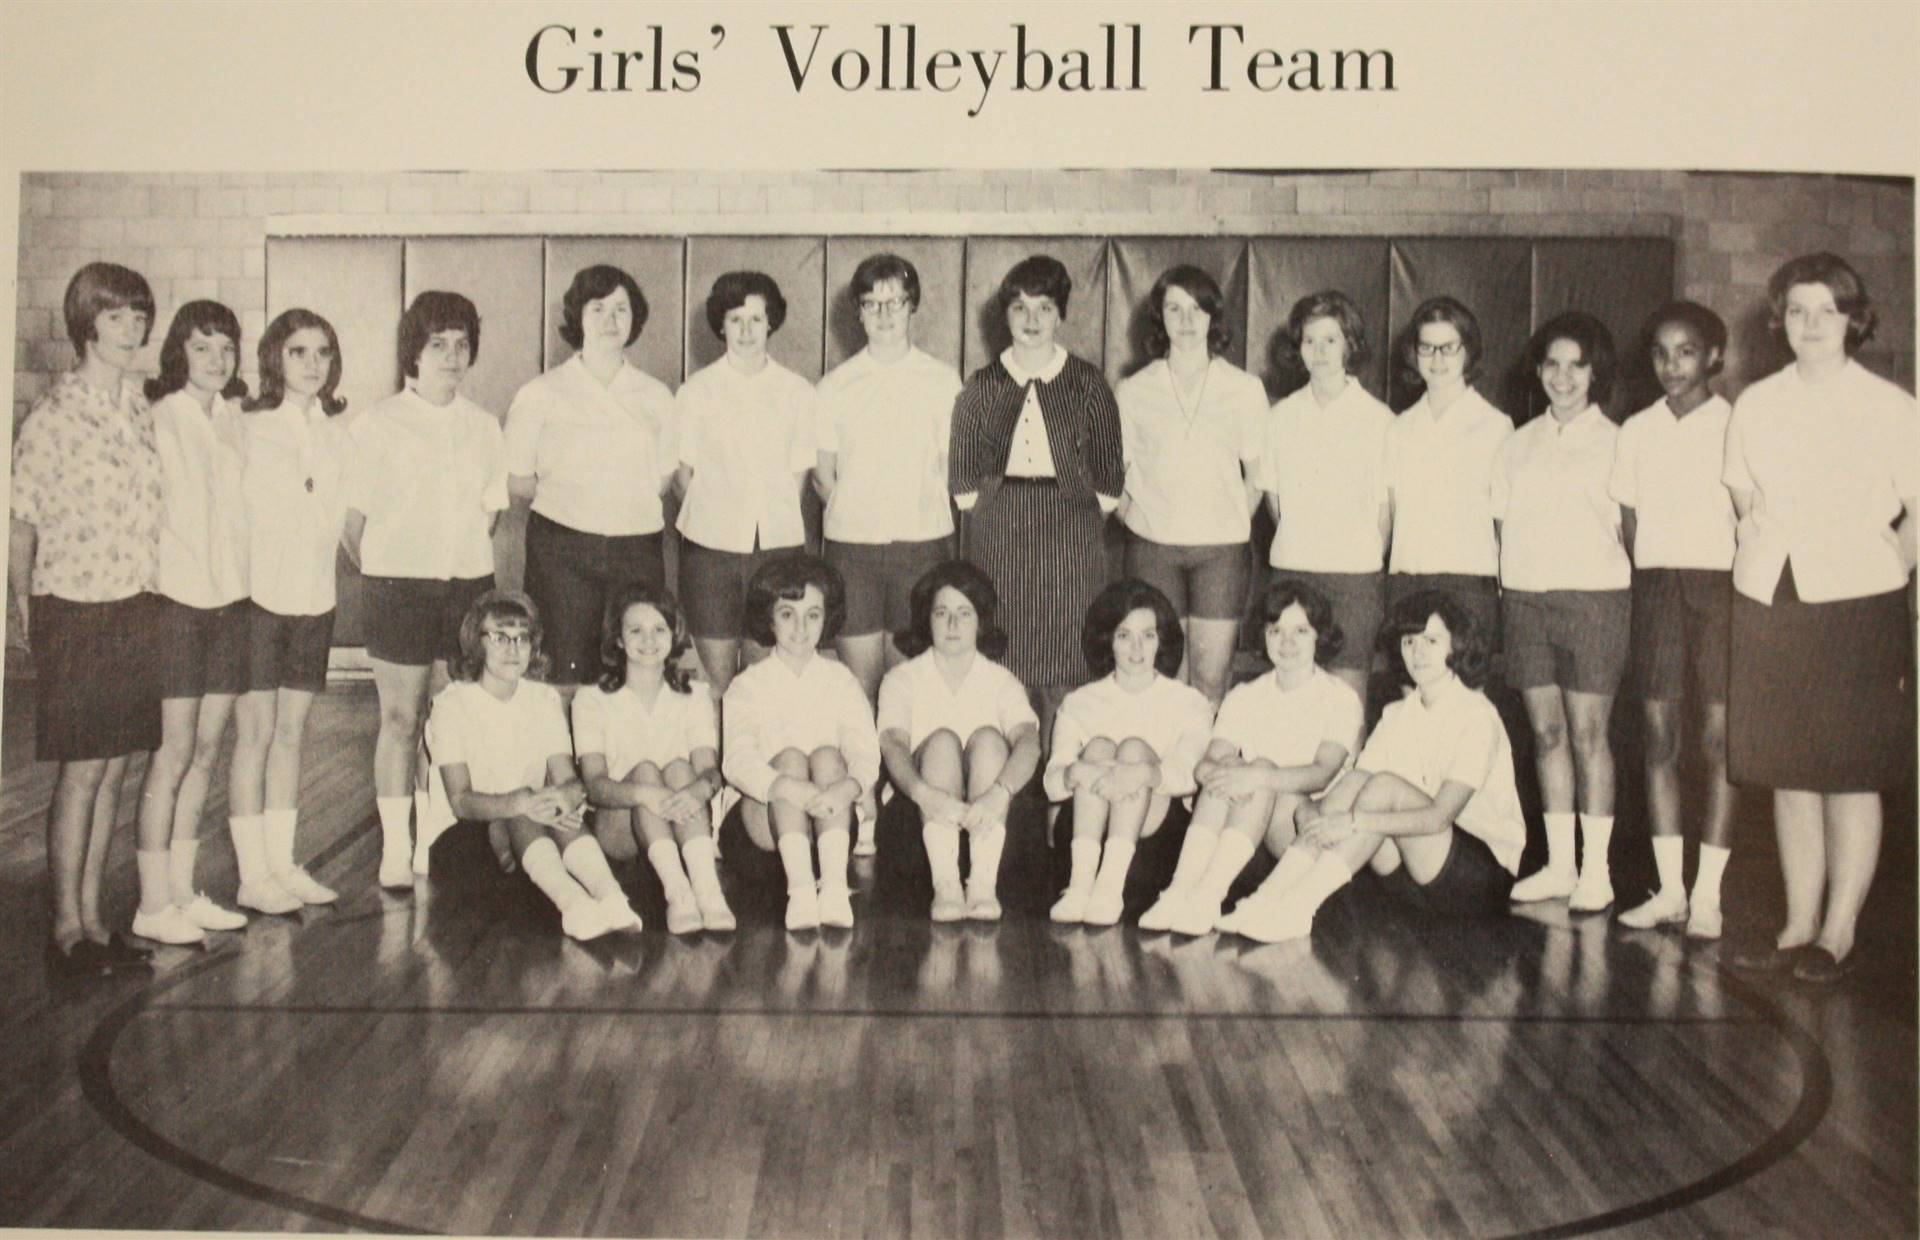 1967 Girls' Volleyball Team